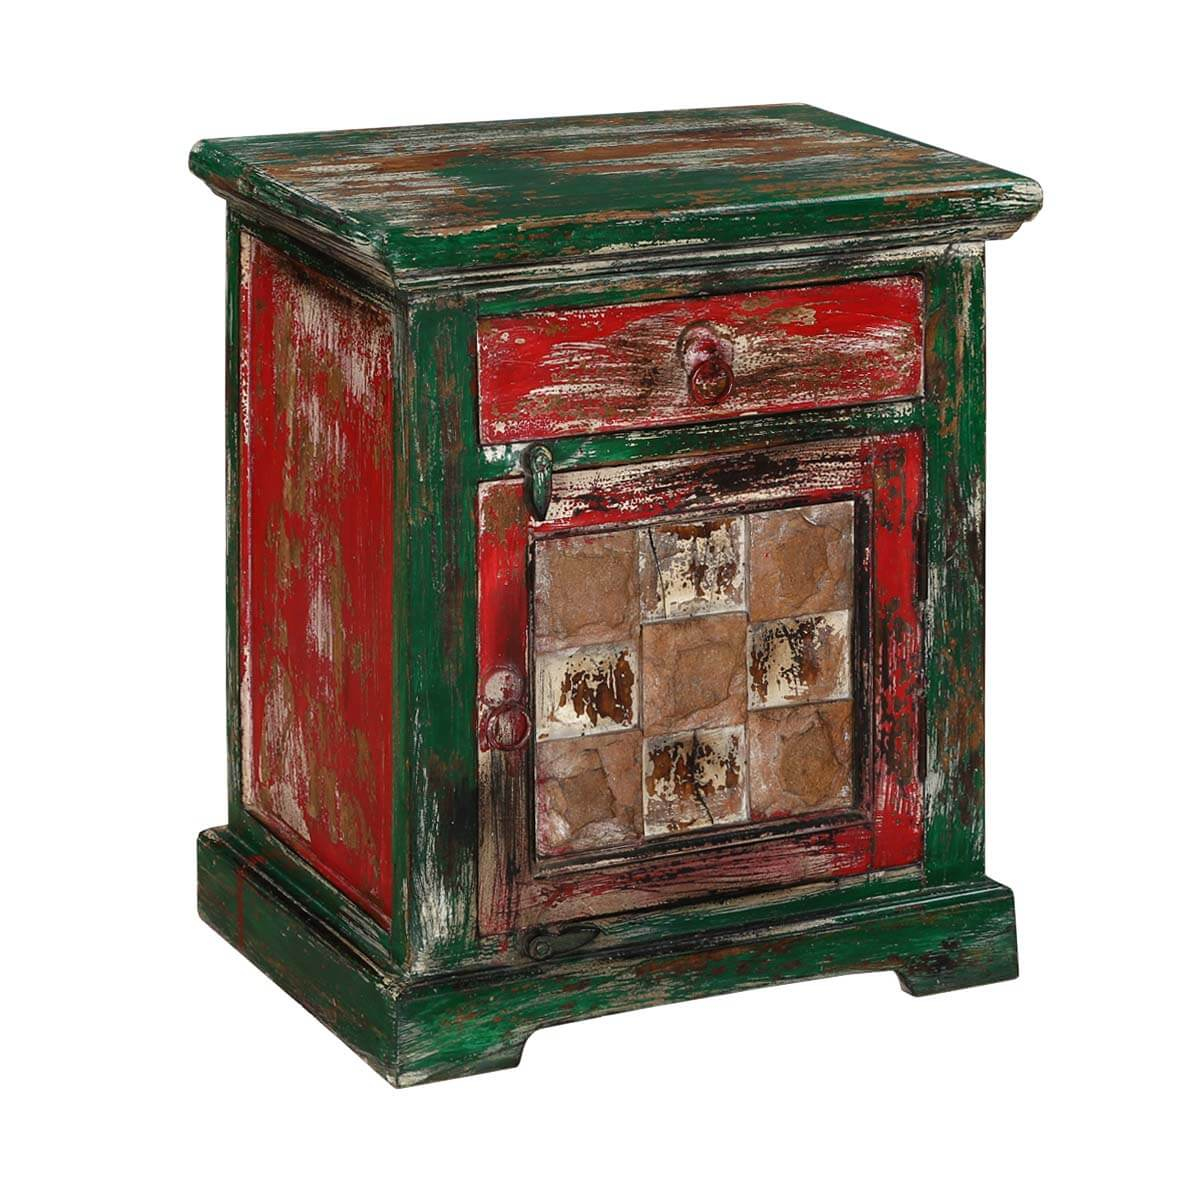 "Rustic Red & Green Mango Wood 23"" Nightstand End Table Cabinet"